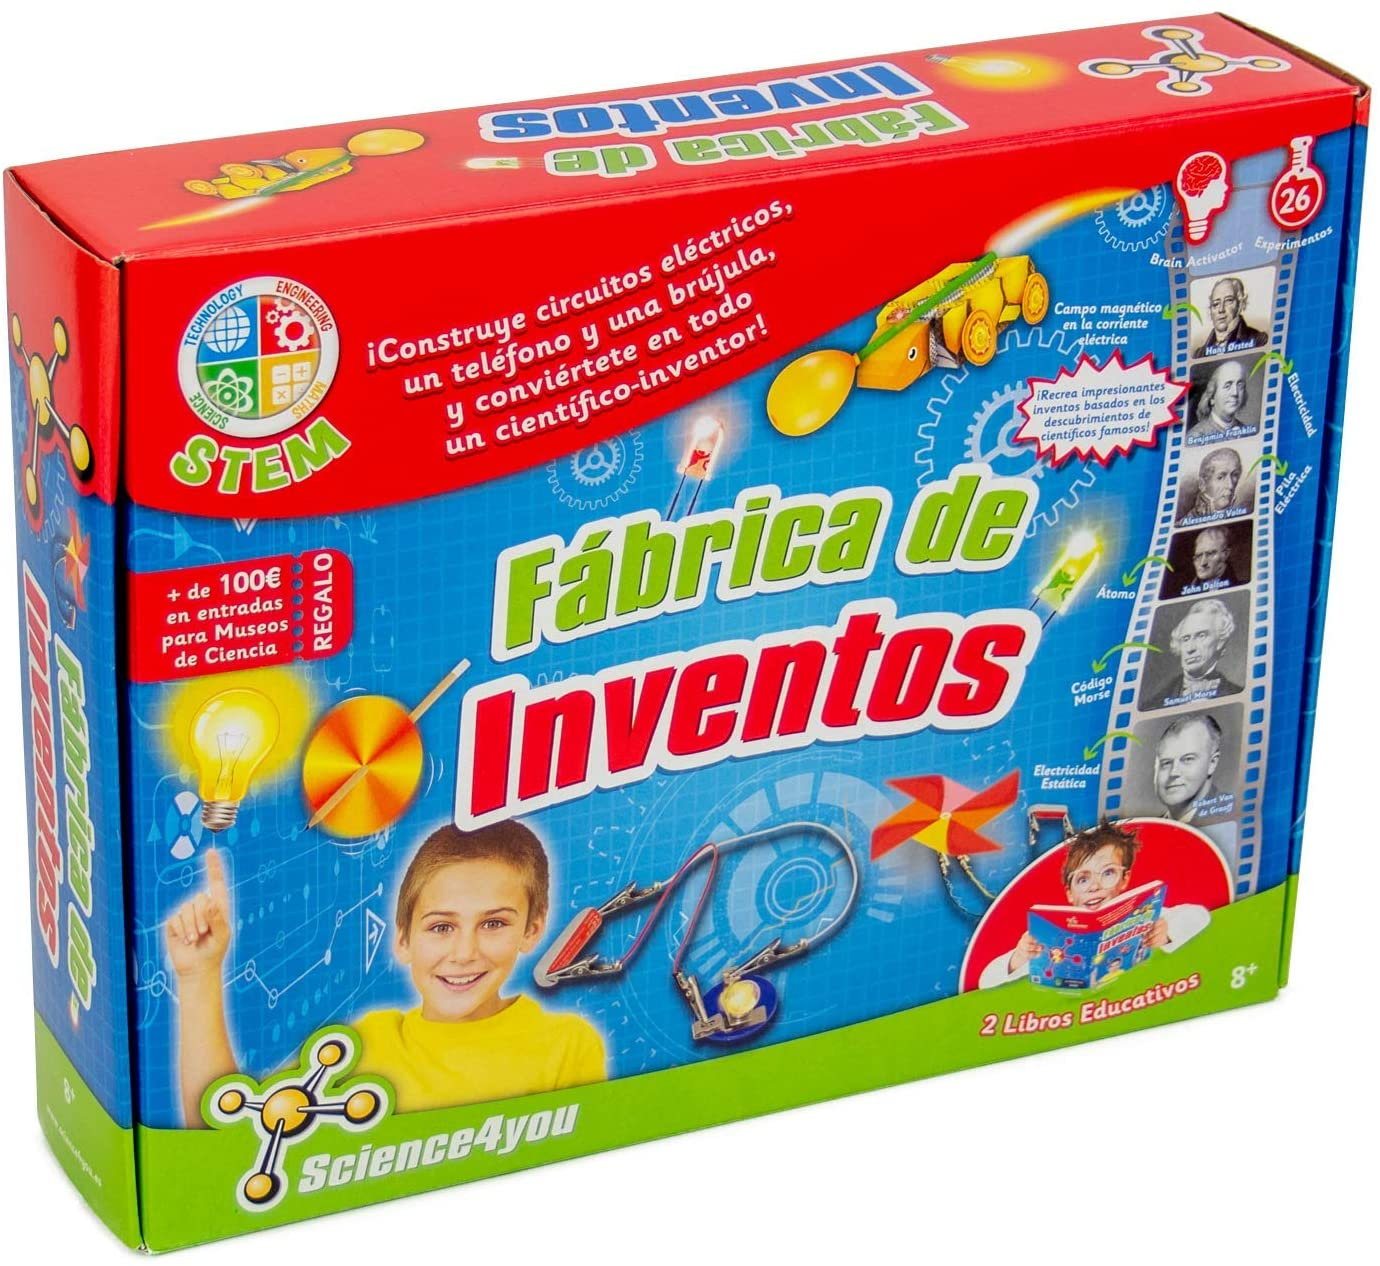 Science4you-5600983600225 Fábrica de Inventos, Juguete Educativo y ...